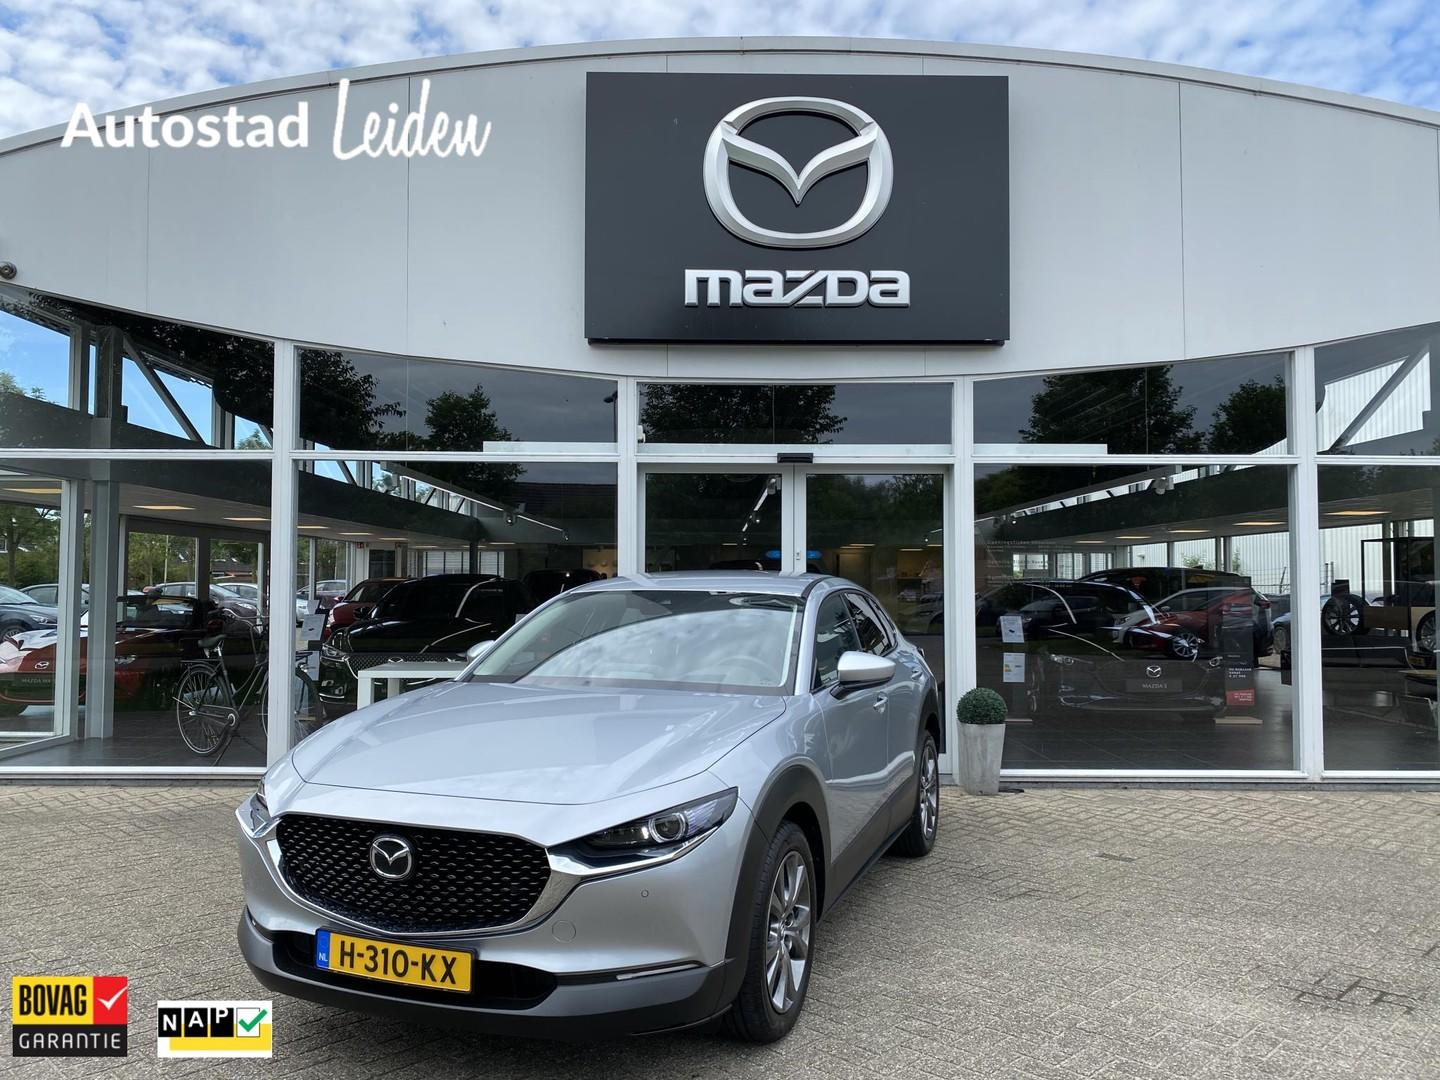 Mazda Cx-30 2.0 skyactiv-x luxury/demo 180pk